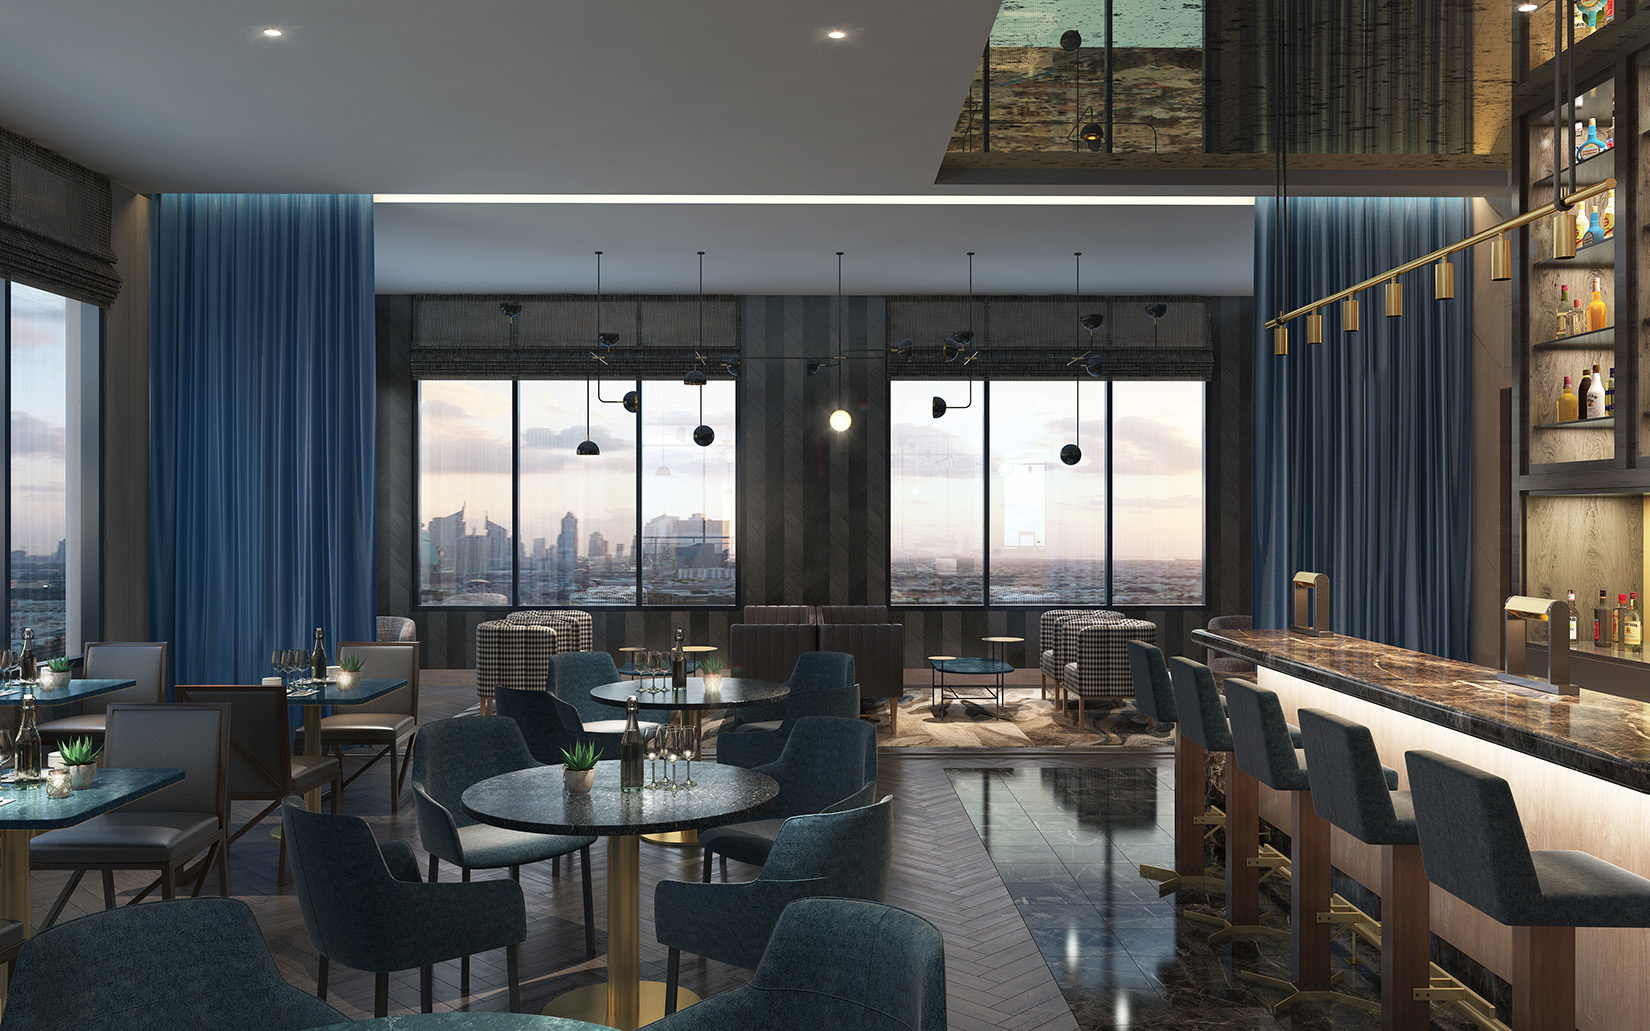 The lounge of the Oaklander features bar seating and consistent interior design choices throughout the project.